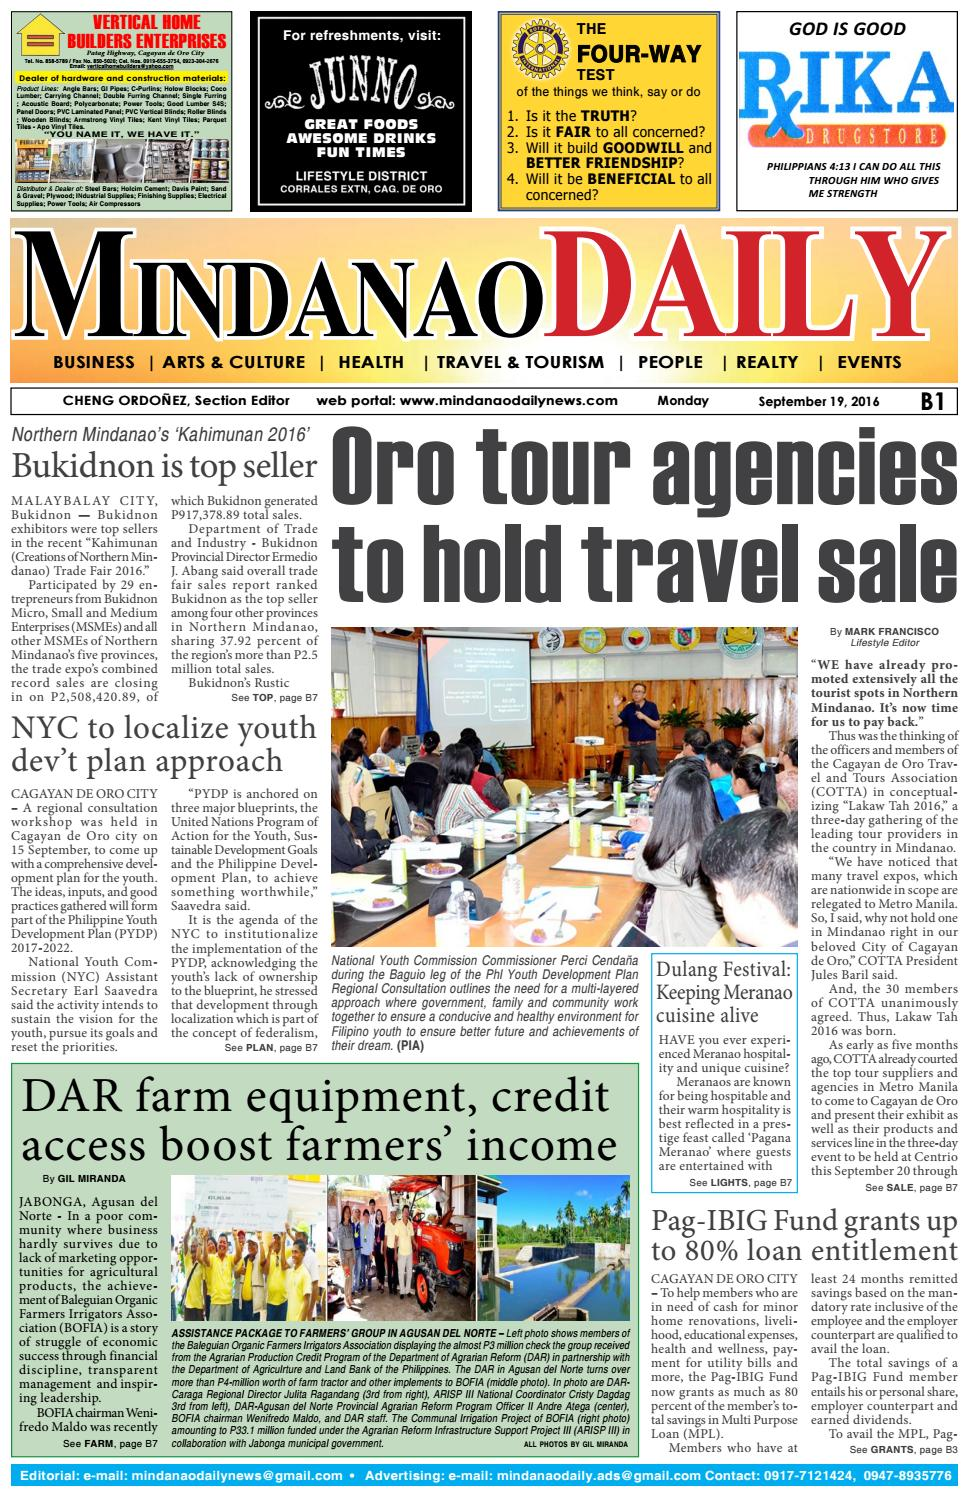 Mindanao Daily Set B (September 19, 2016) by Mindanao Daily